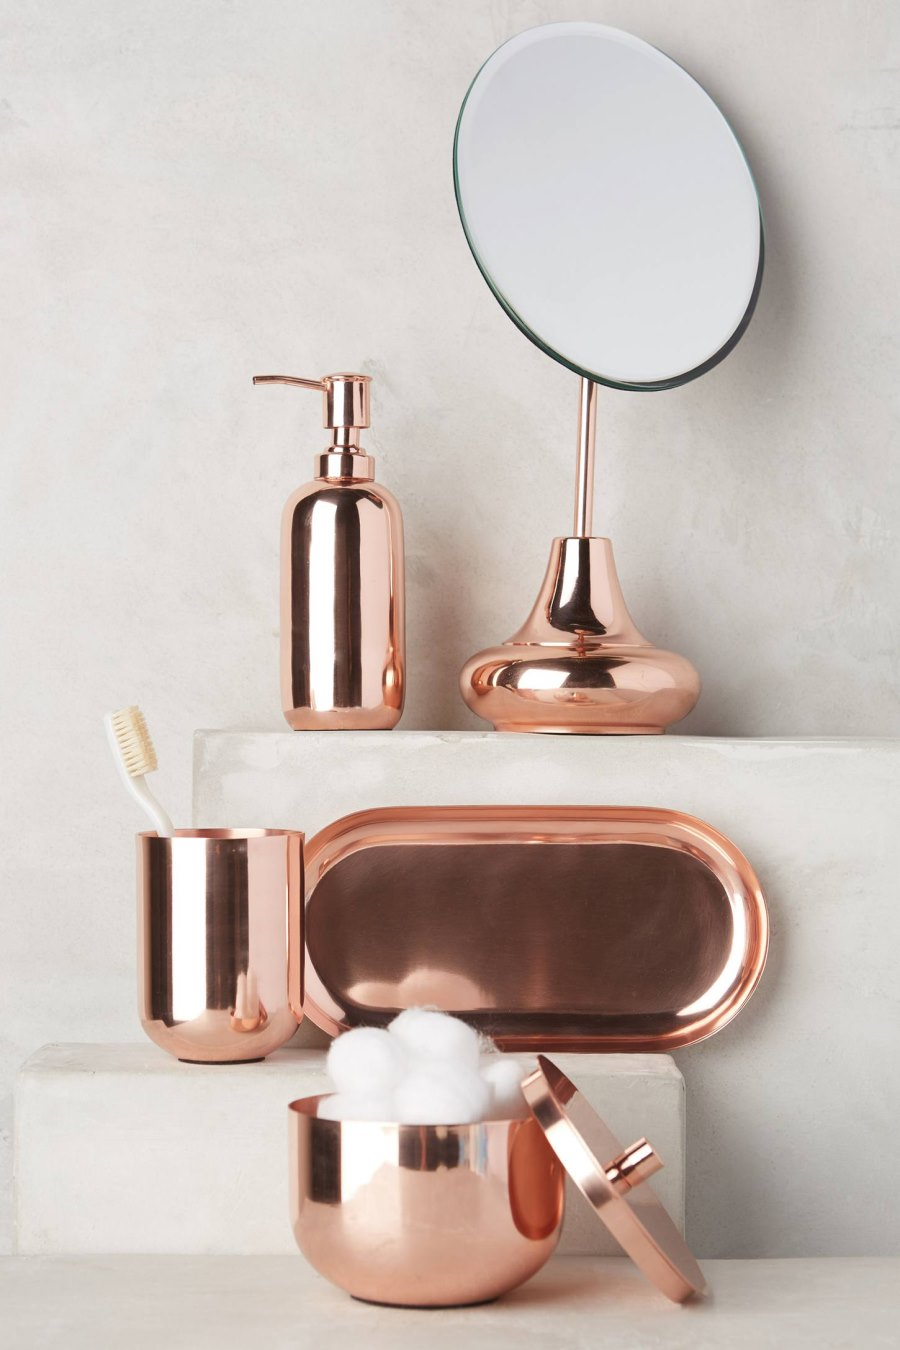 High end bathroom accessories with modern style for Bathroom decor ross